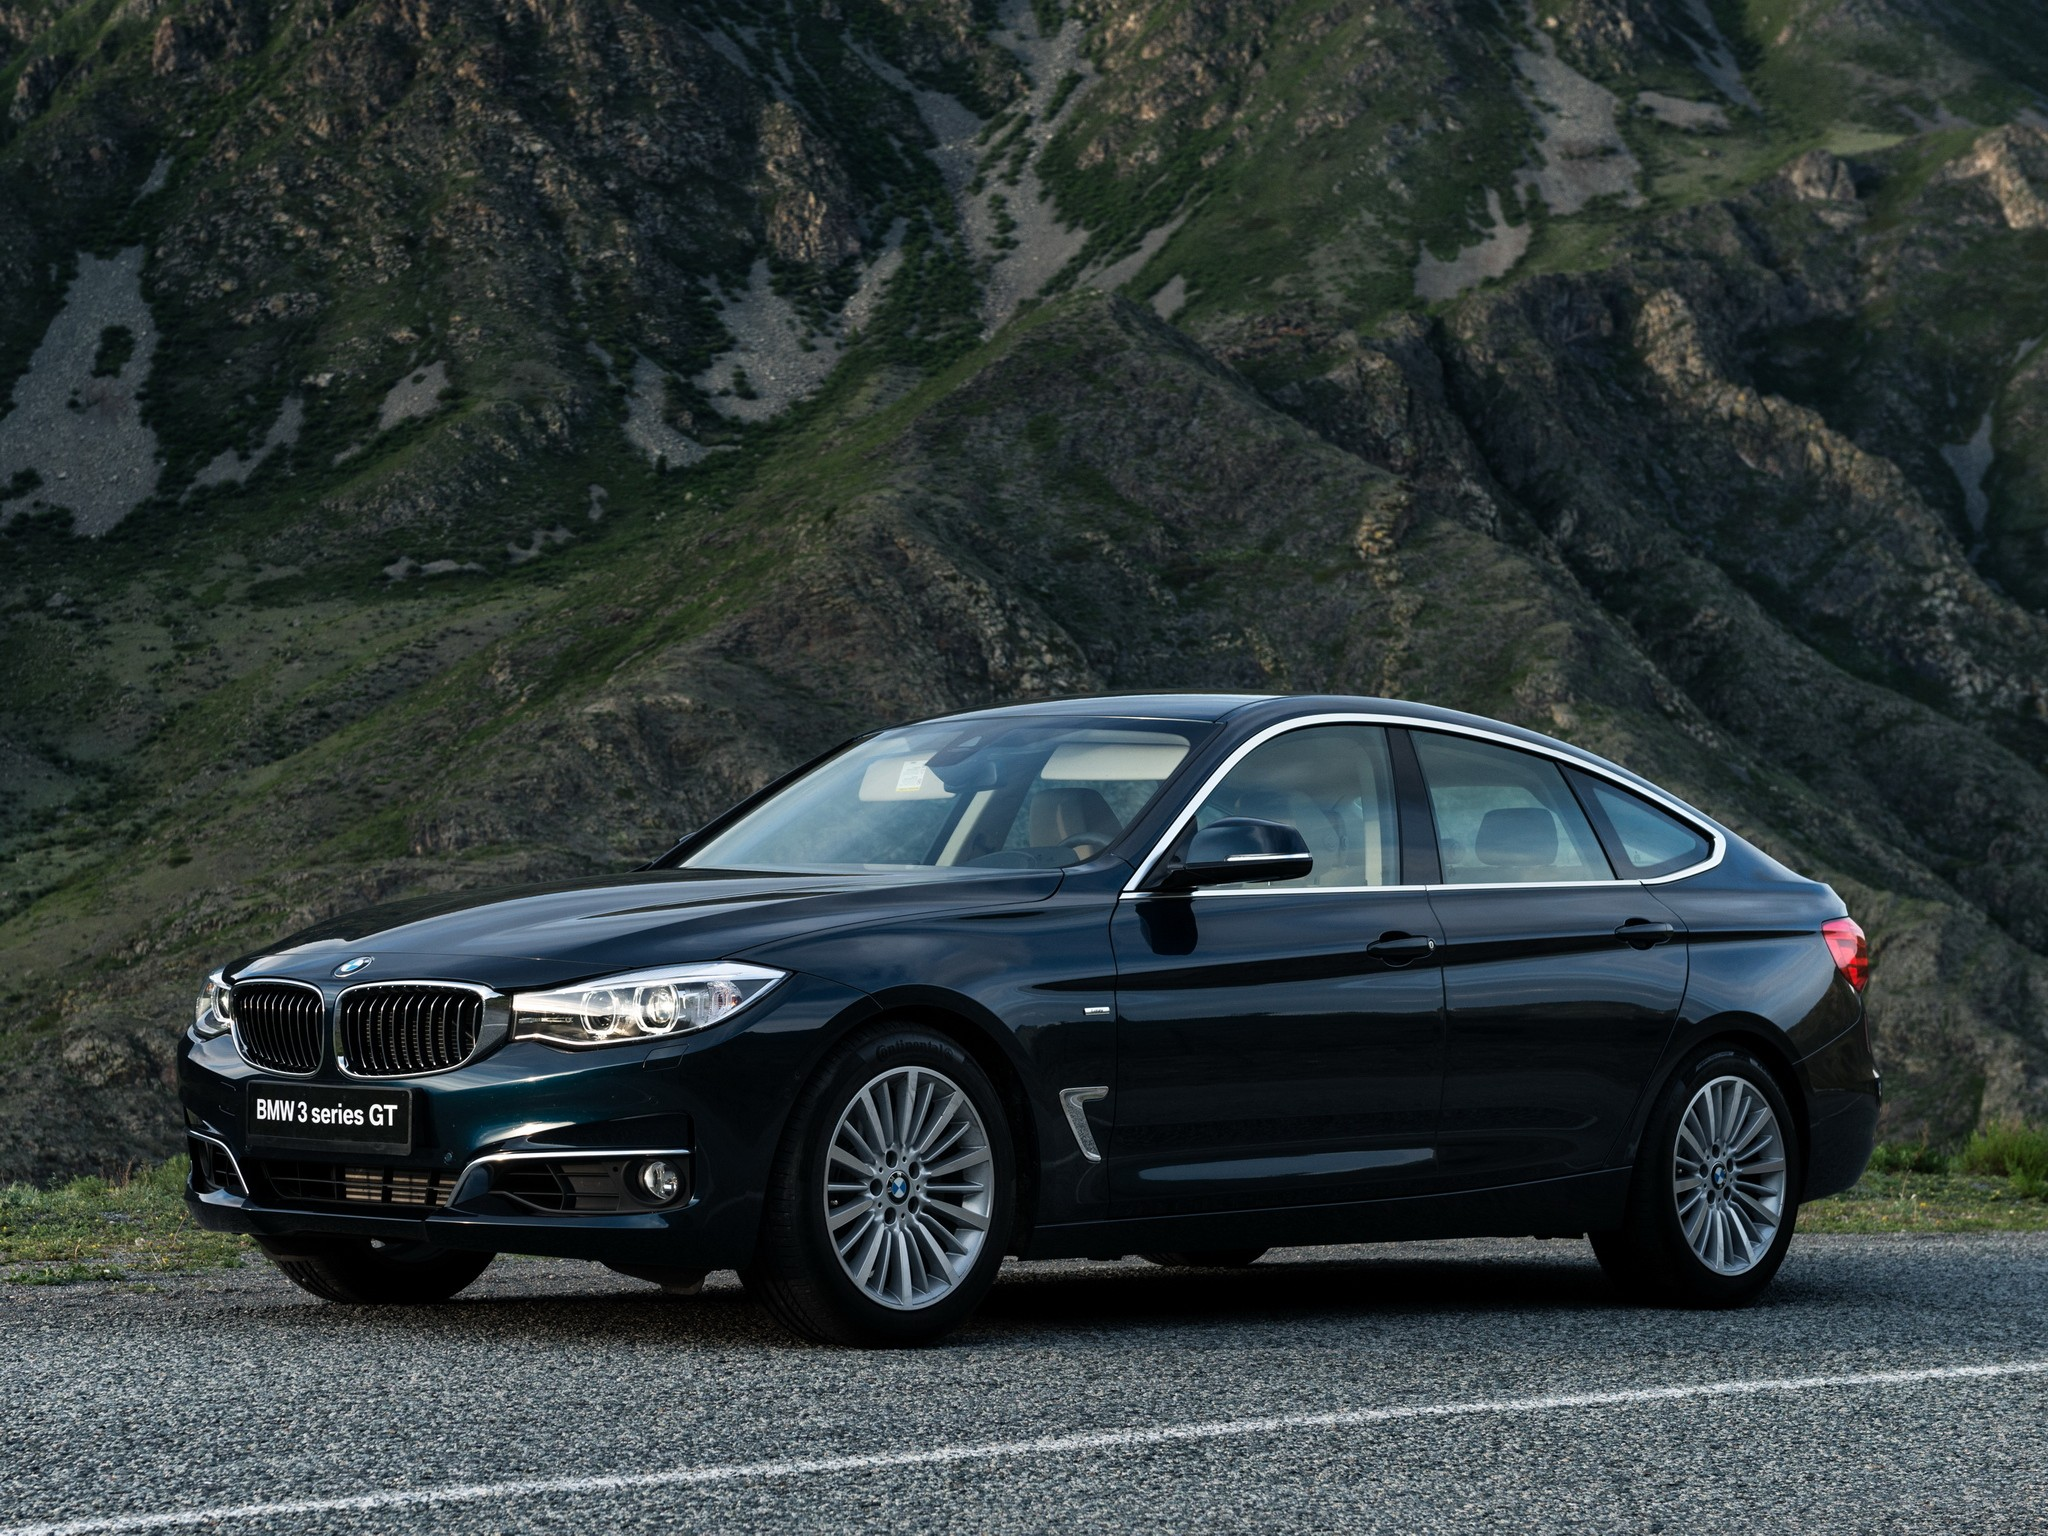 bmw 3 series gran turismo f34 specs 2013 2014 2015 2016. Cars Review. Best American Auto & Cars Review